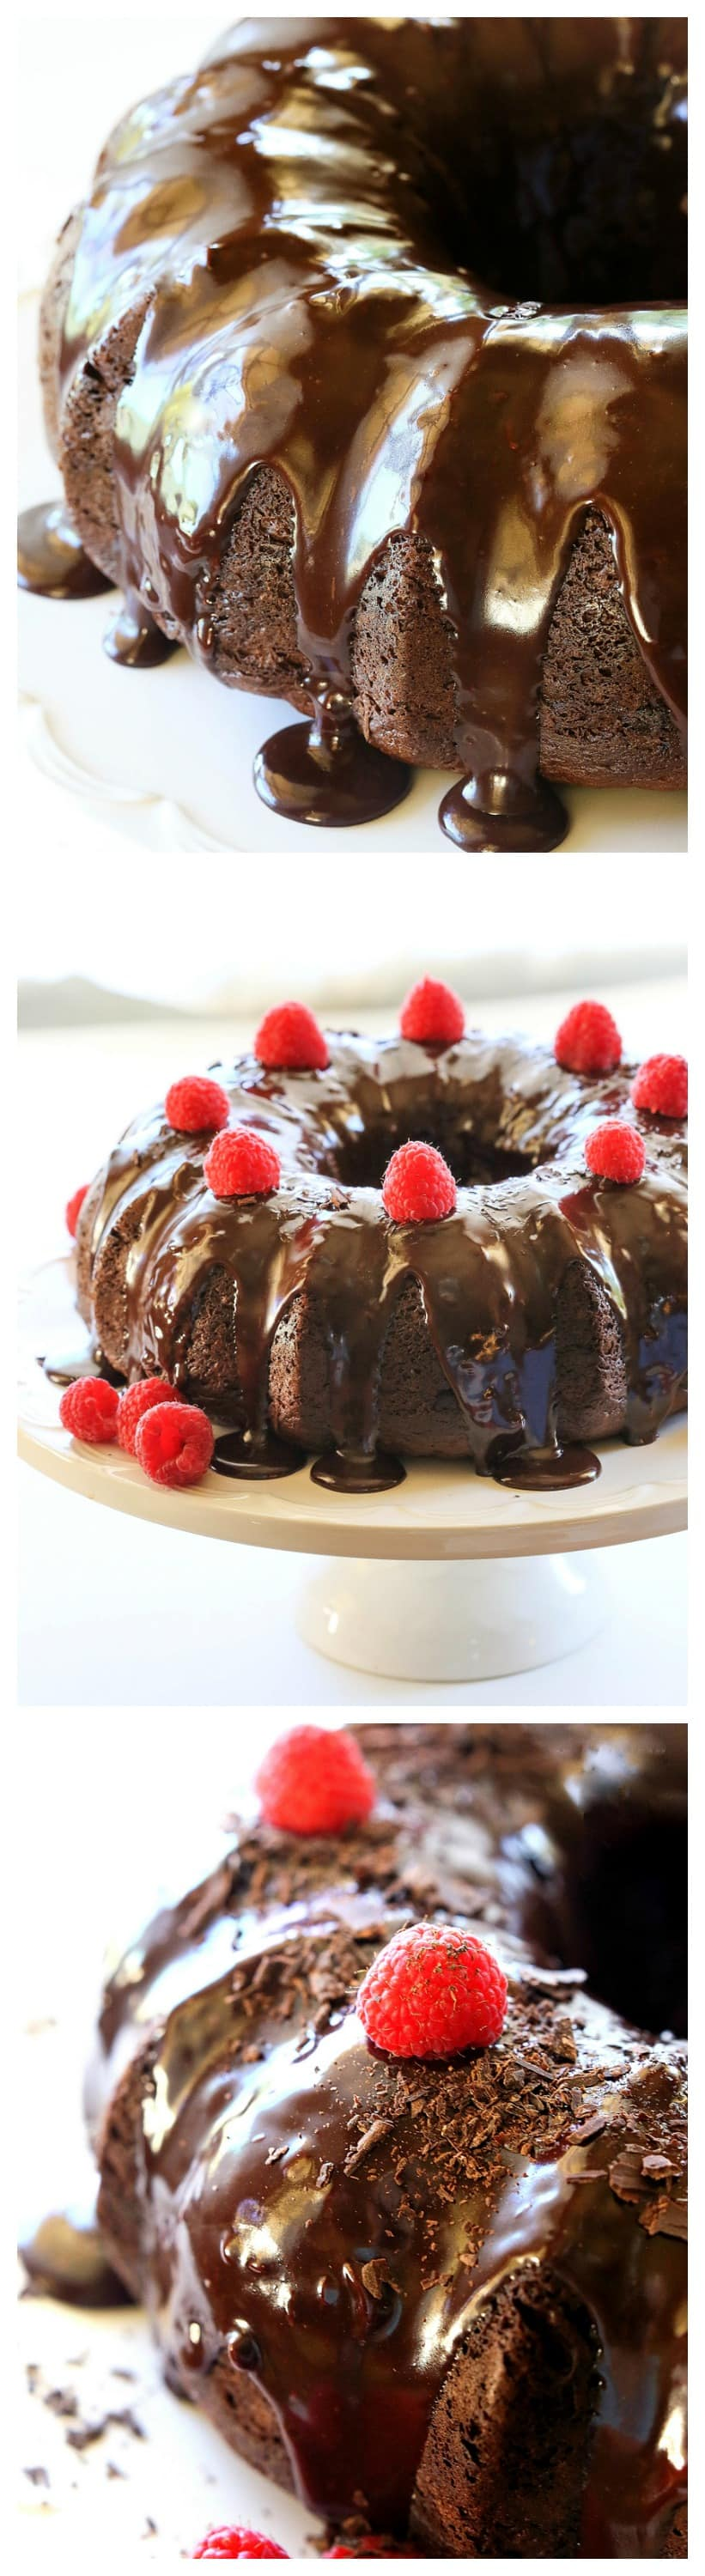 Sinfully Delicious and Easy Chocolate Bundt Cake - the-girl-who-ate-everything.com